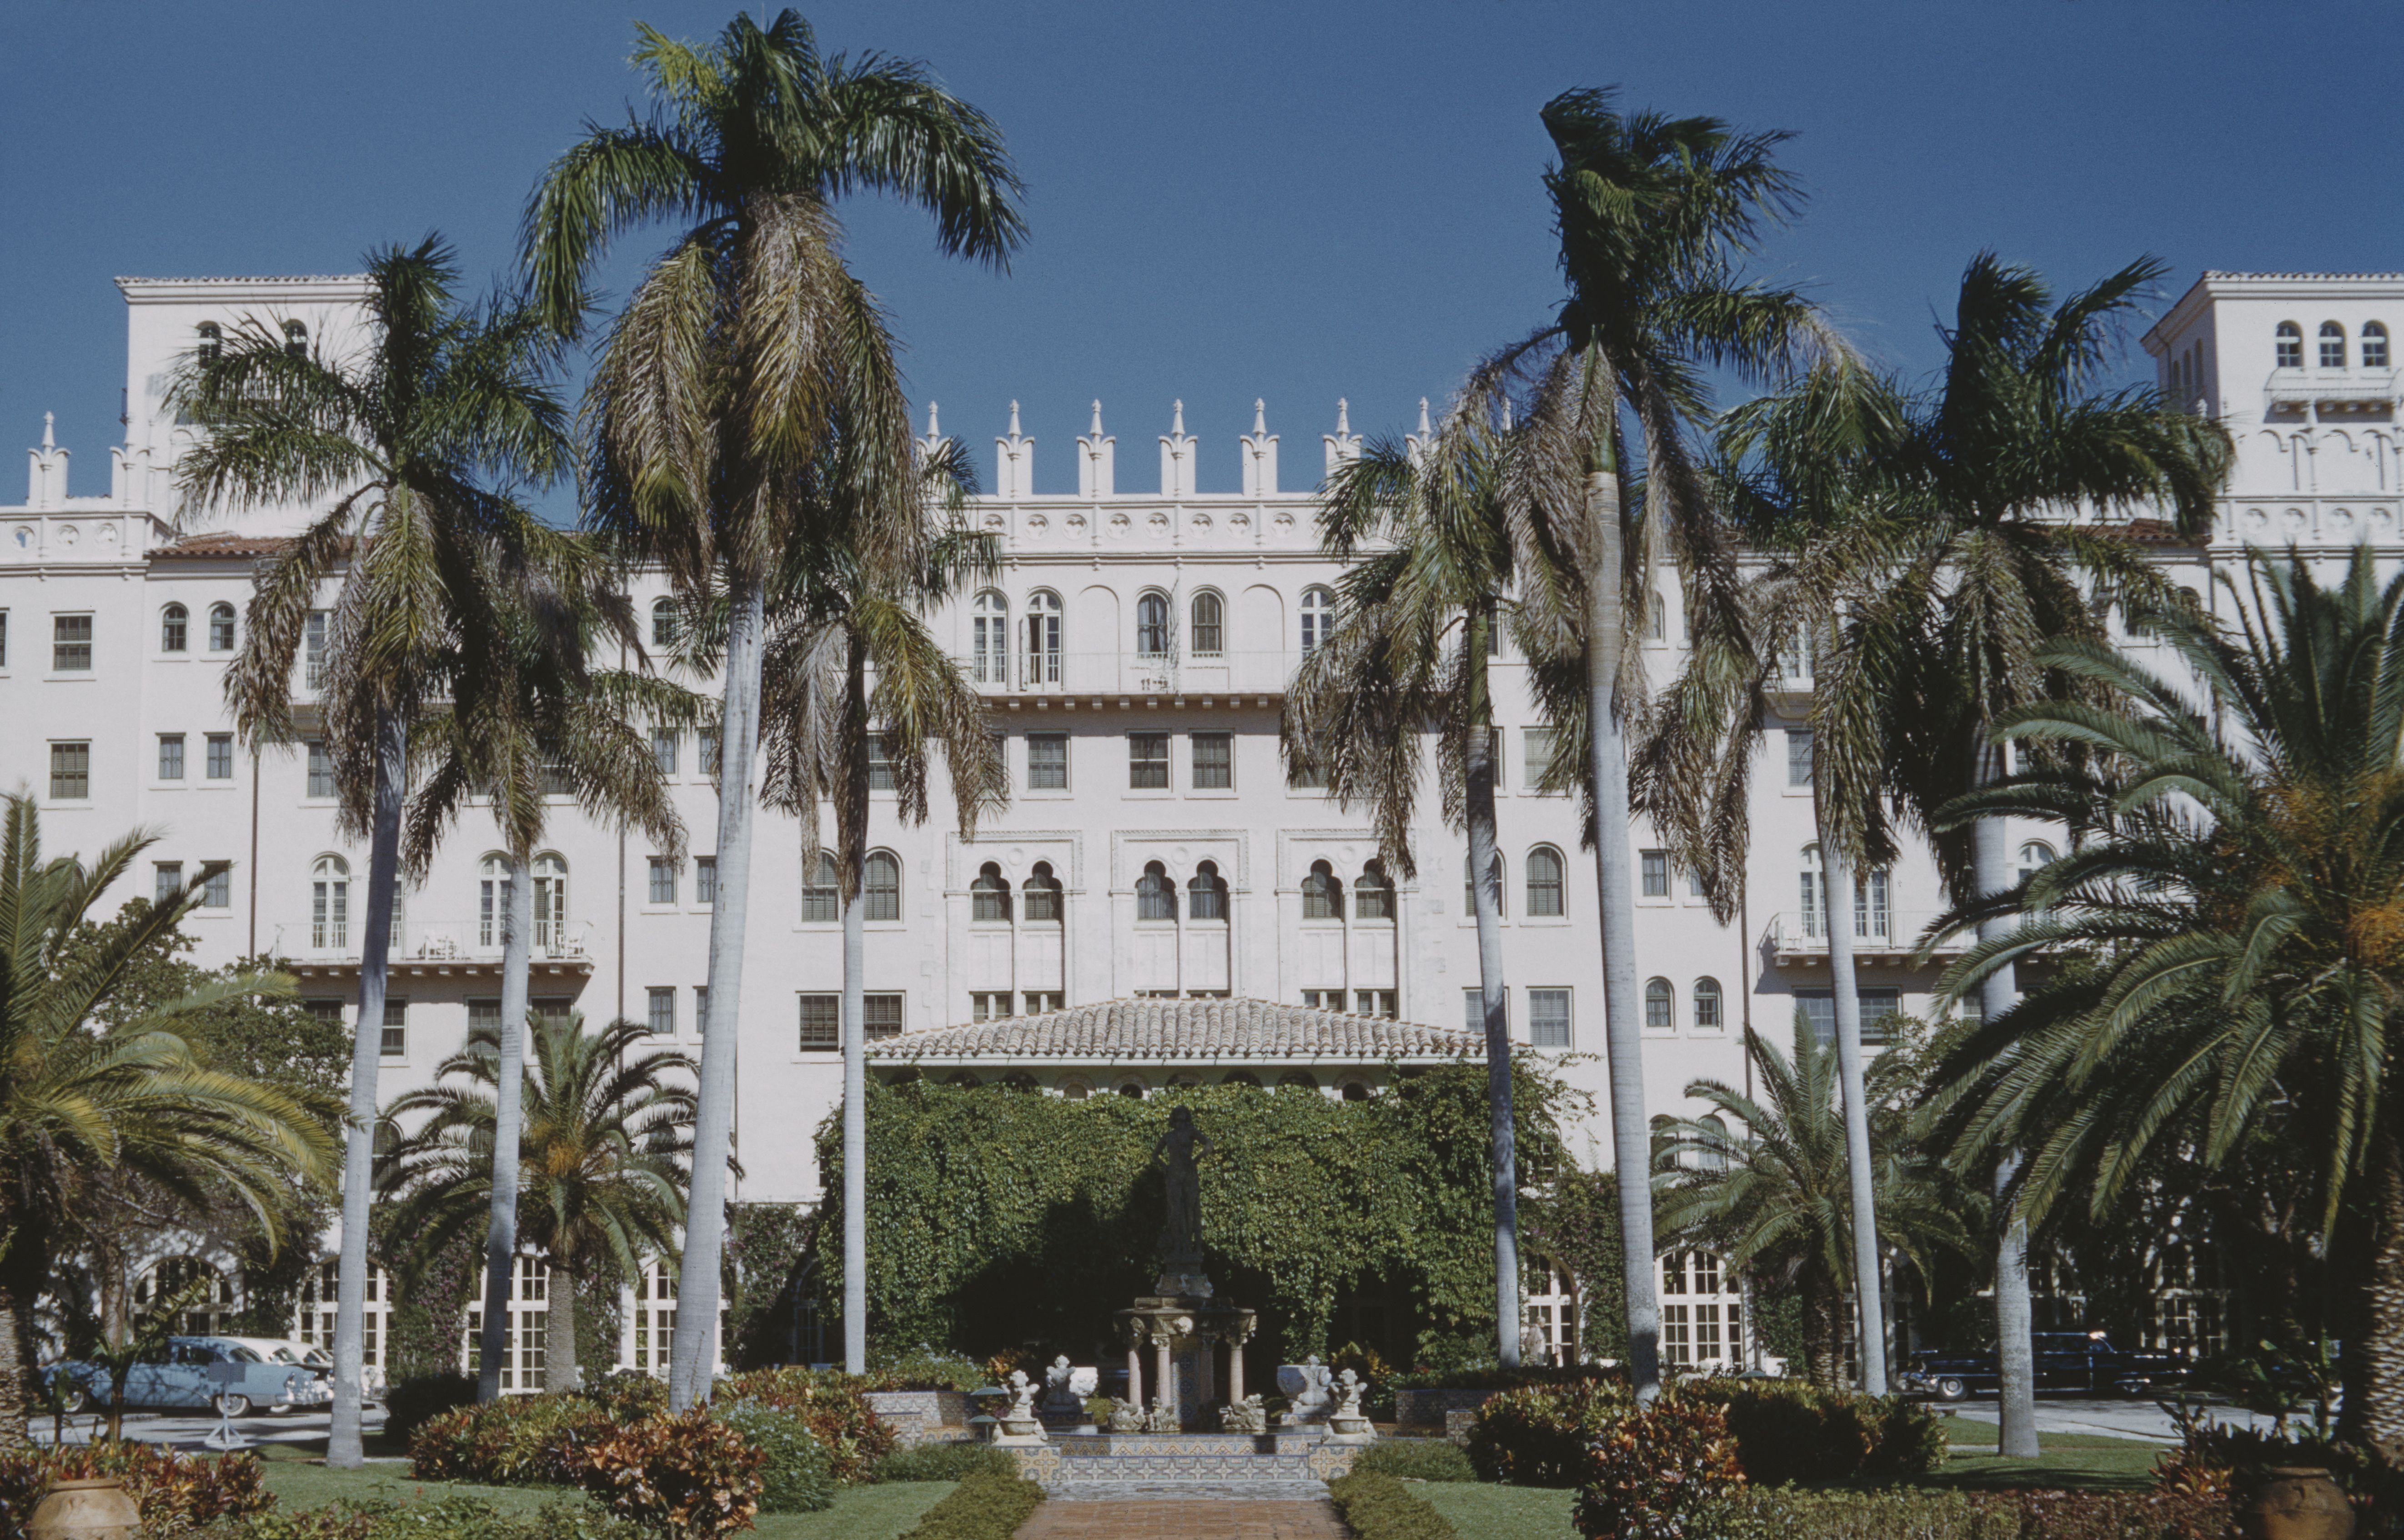 large, multi-story hotel, white color, ornate, arched windows